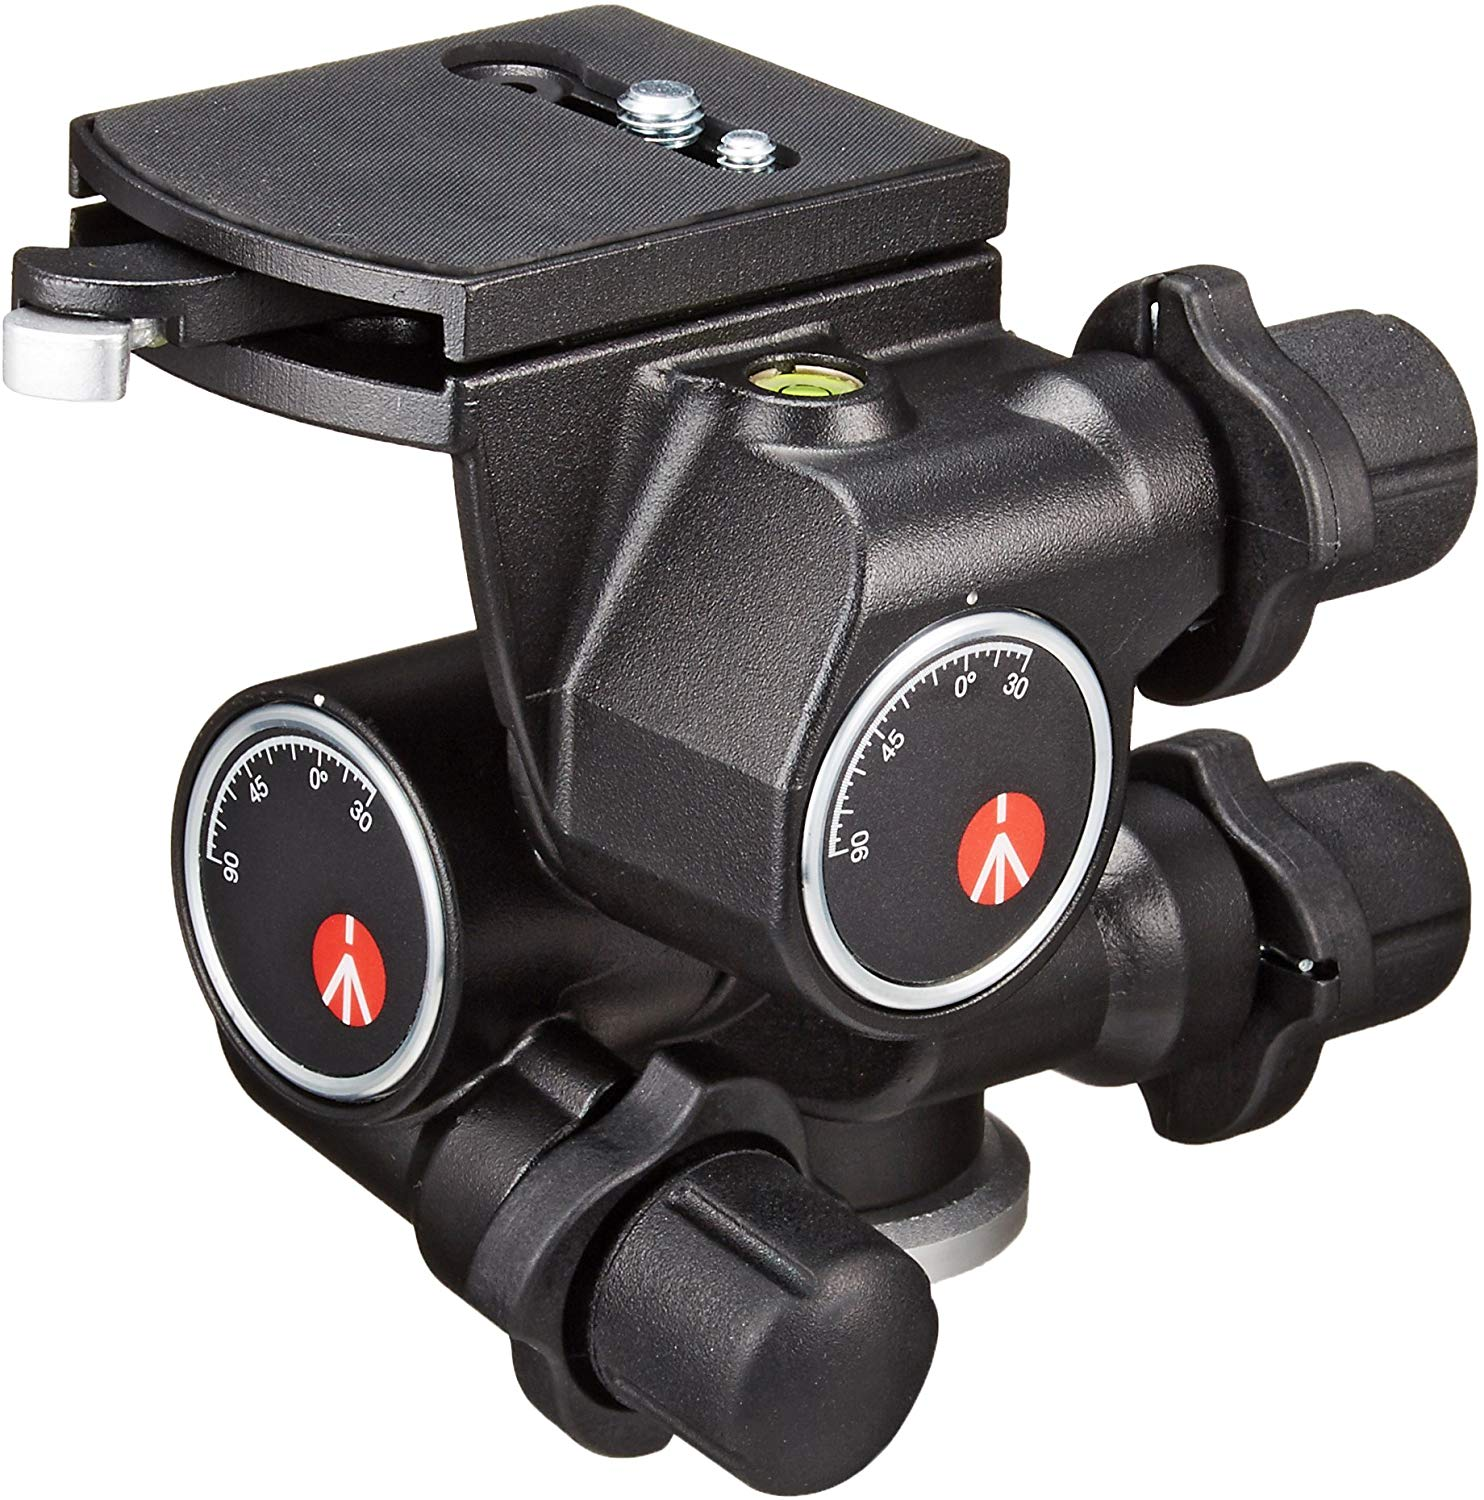 Save £38 on Manfrotto 410 Junior Geared Head, Black